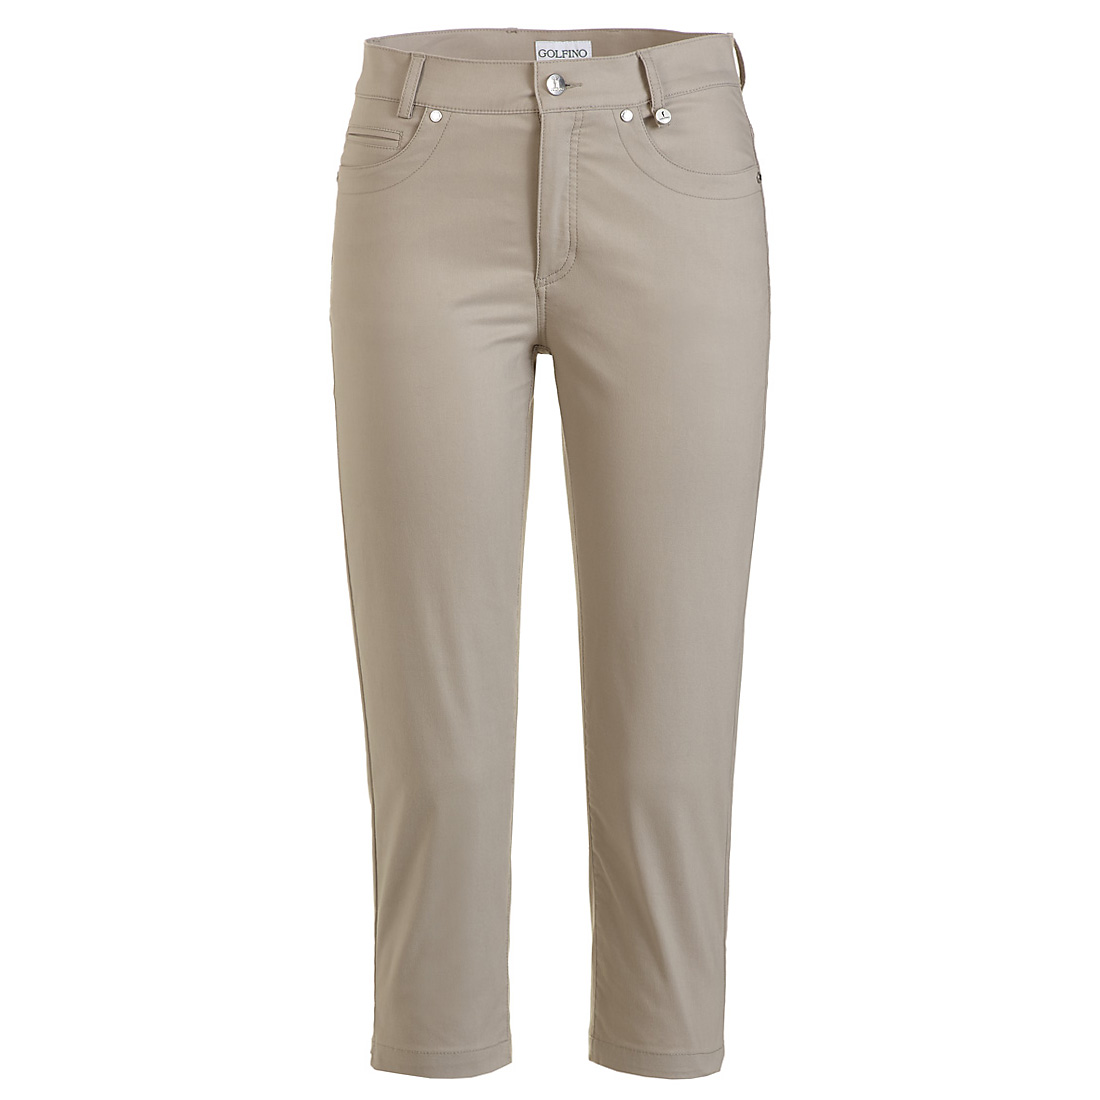 Golf Caprihose aus Baumwoll-Stretch mit Sun Protection in Slim Fit